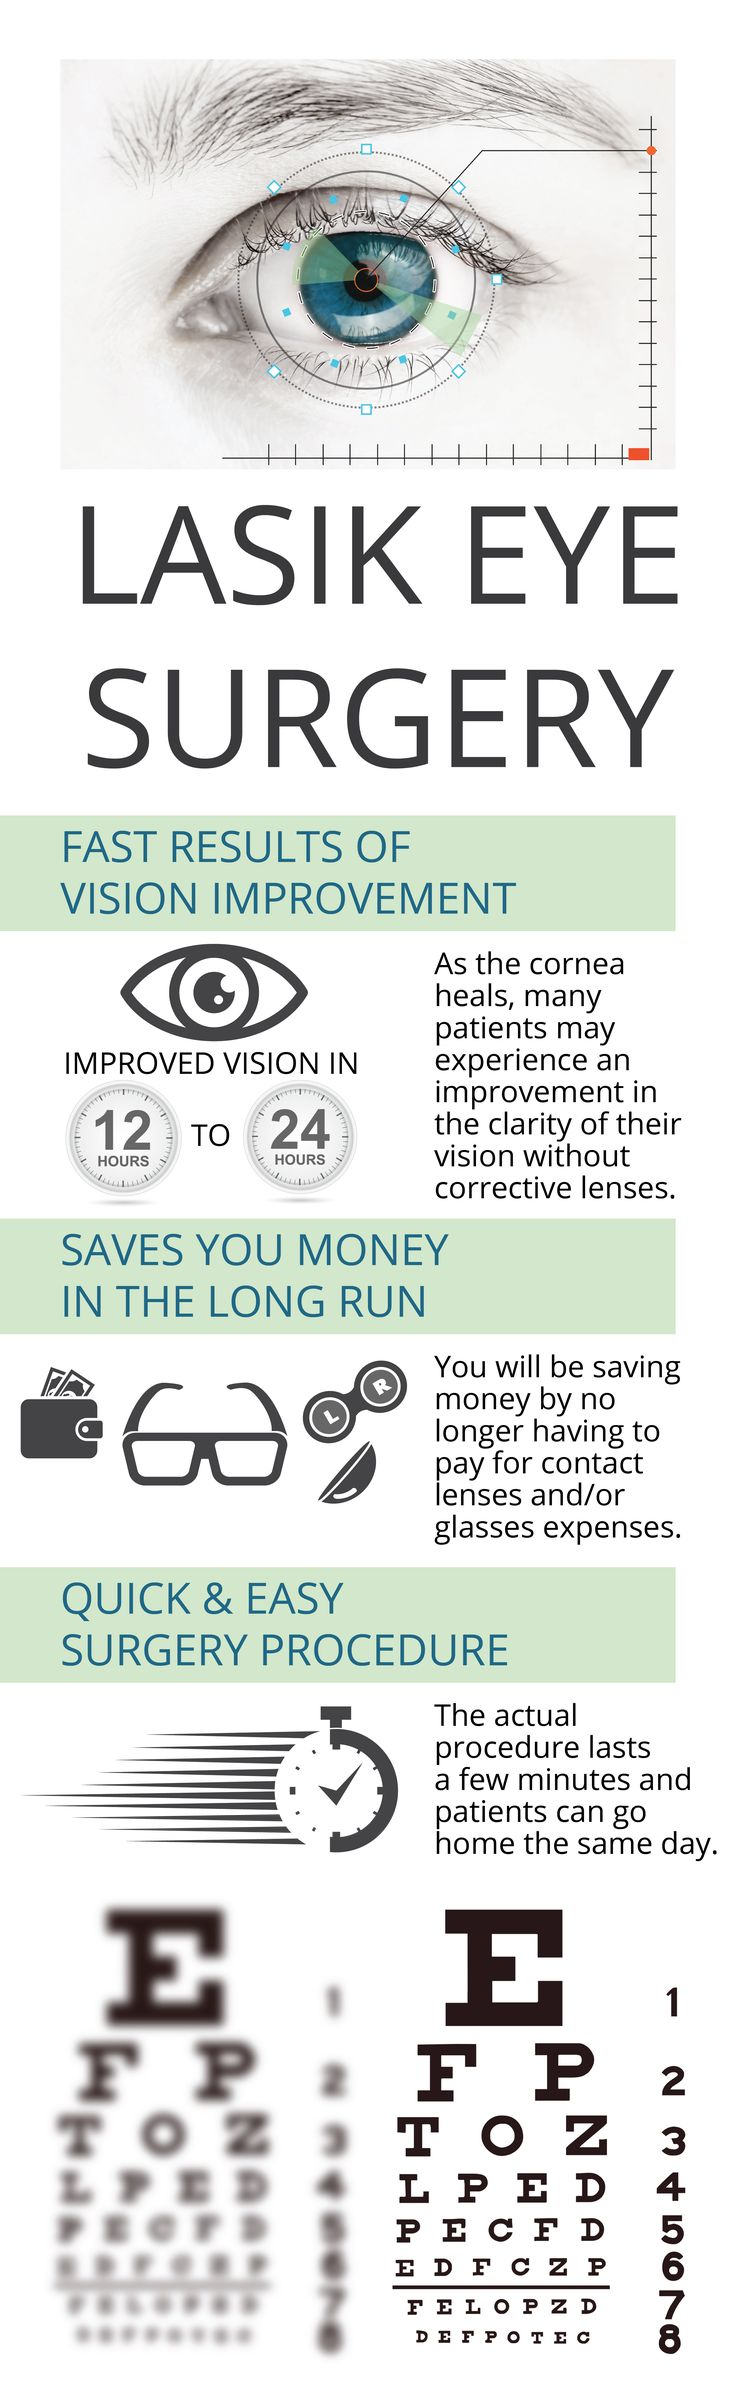 Revolutionary laser eye surgery is taking the UK by storm. The days of expensive glasses and overpriced contact lenses are coming to an end. With recent leaps in technology, treatment has become more affordable and accessible to people across the UK. Find out the best clinics near you and get a free quote by just entering your post code, email address and phone number.